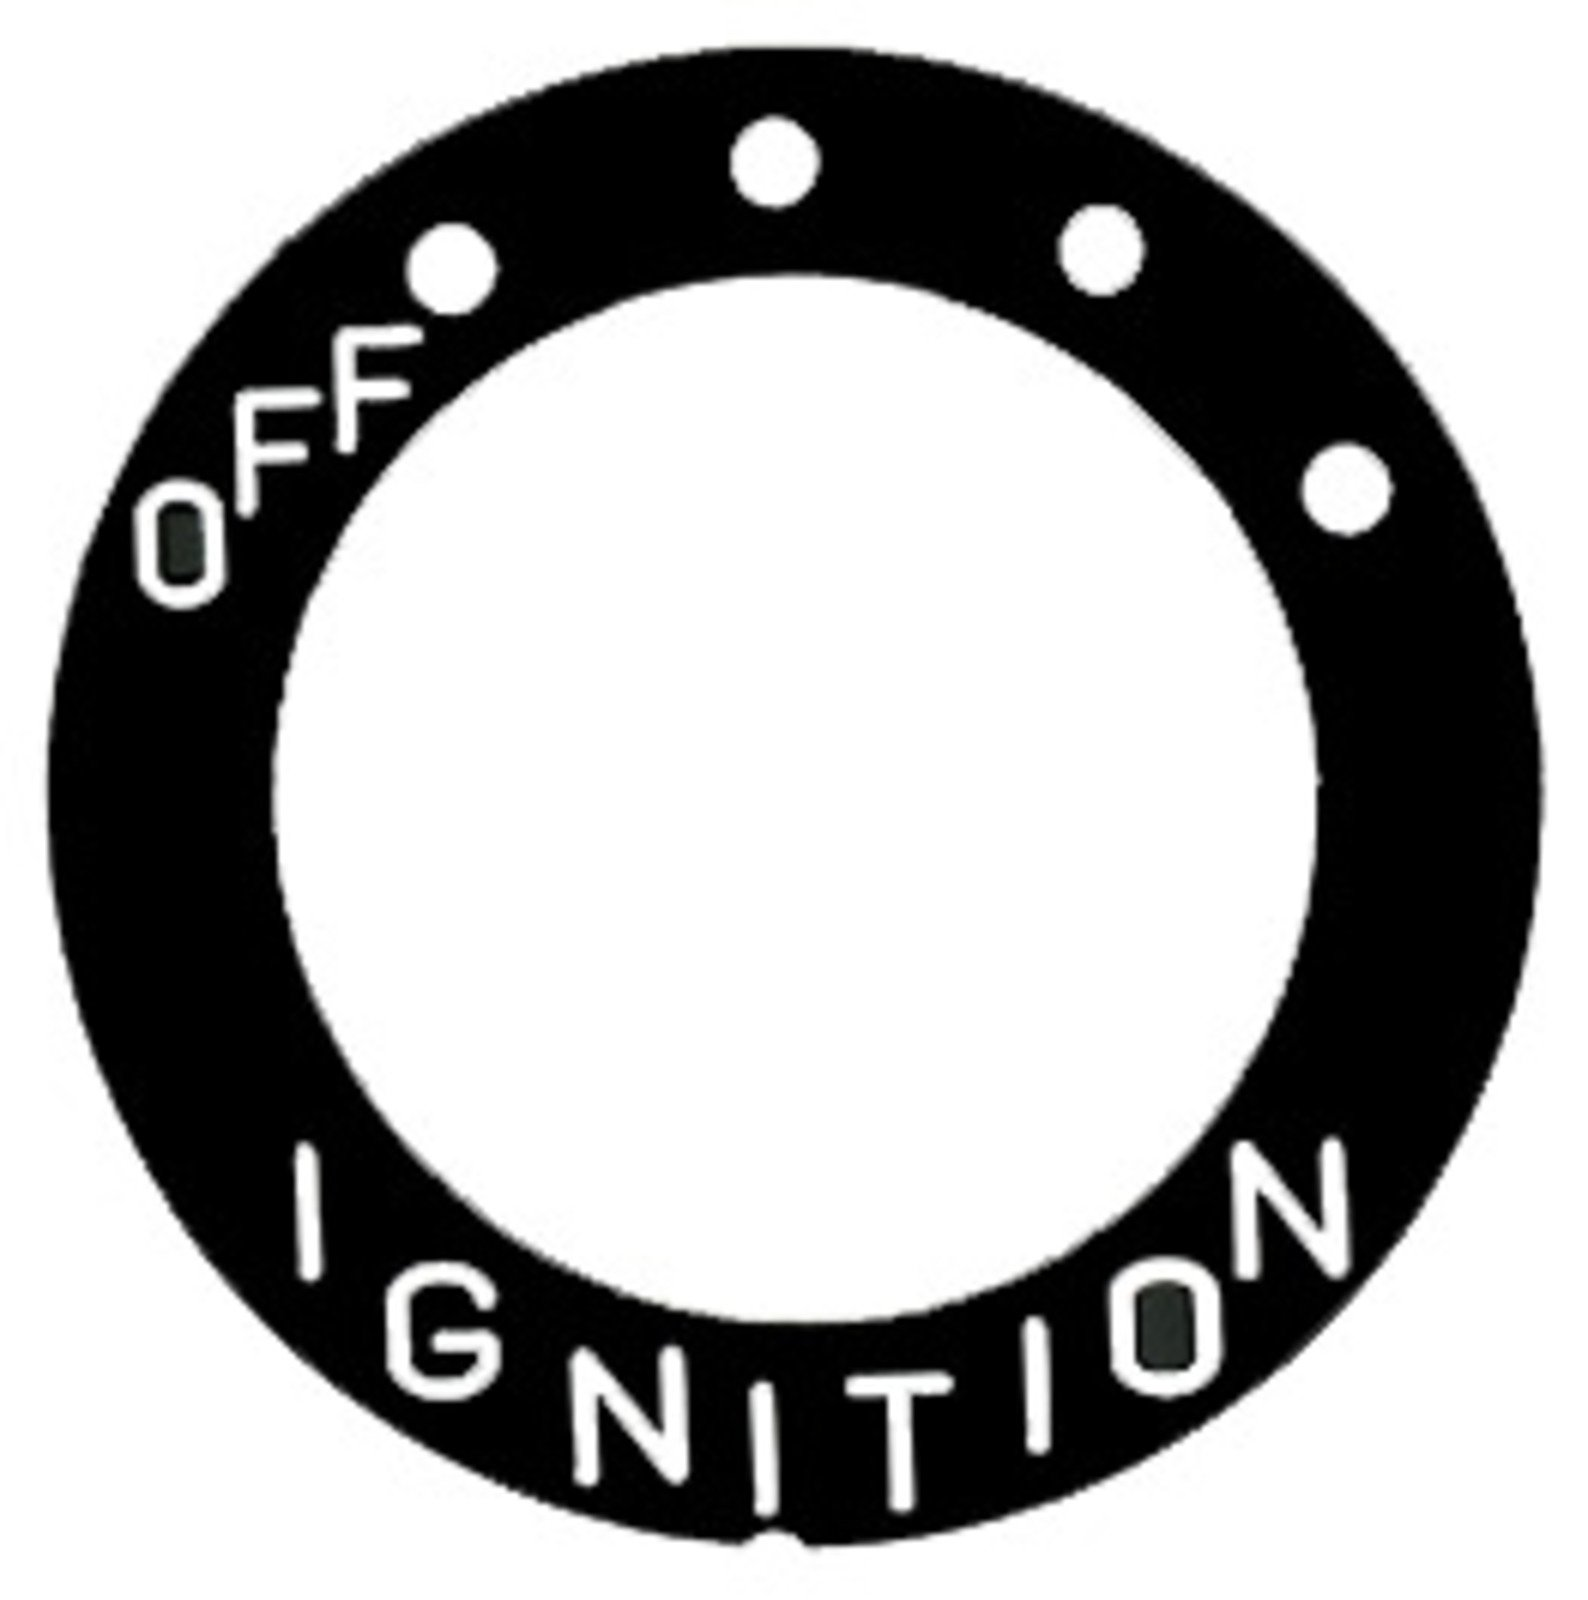 Yamaha Ignition Switch Label for 4-Position Main Switch (Universal) Decal 29-185